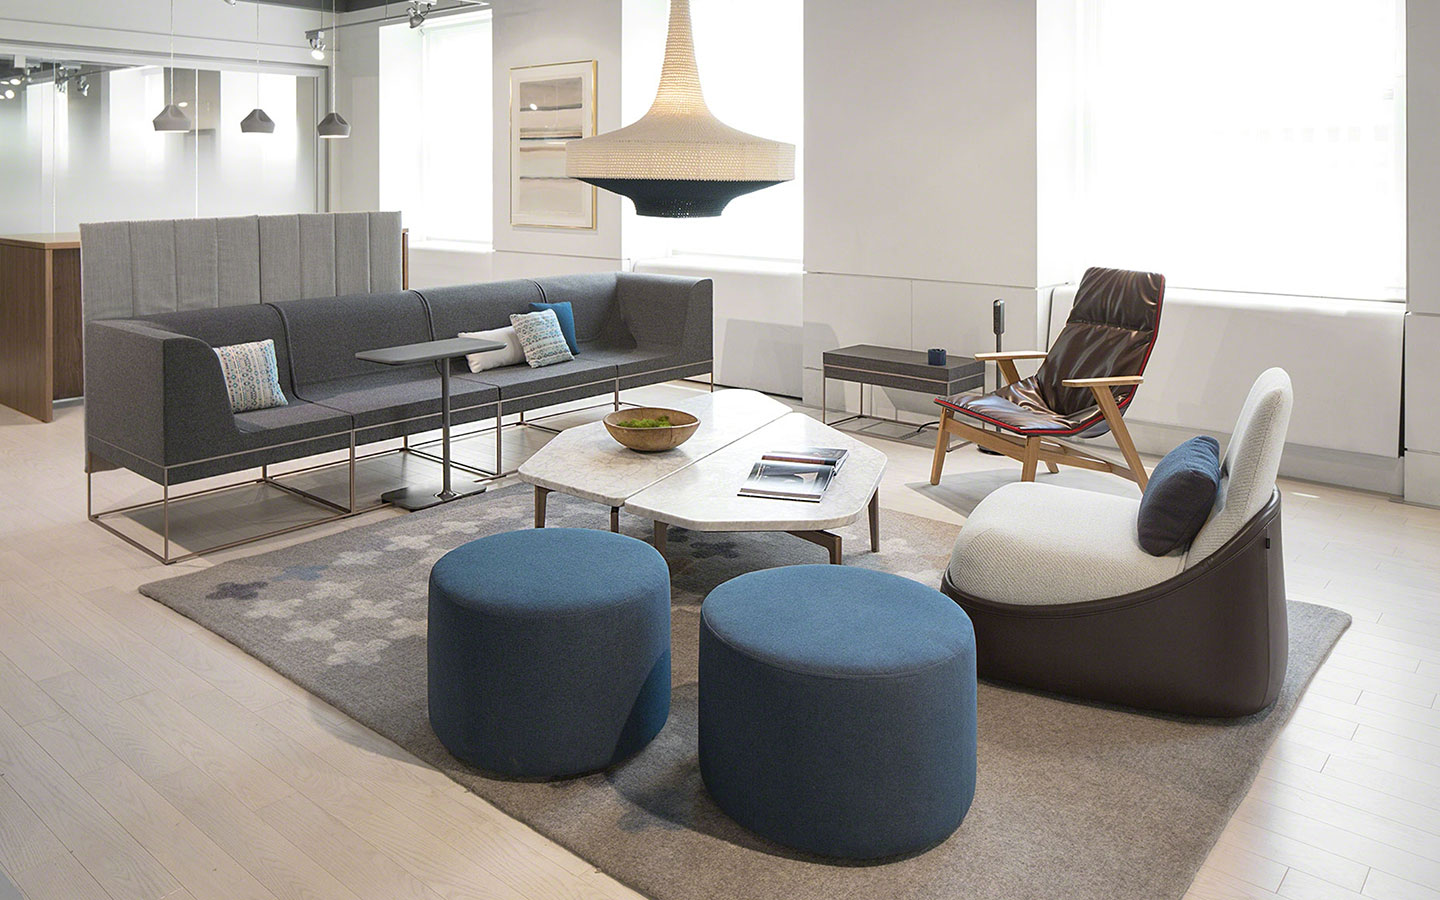 4 Exciting Office Design Trends Changing The Way We Work